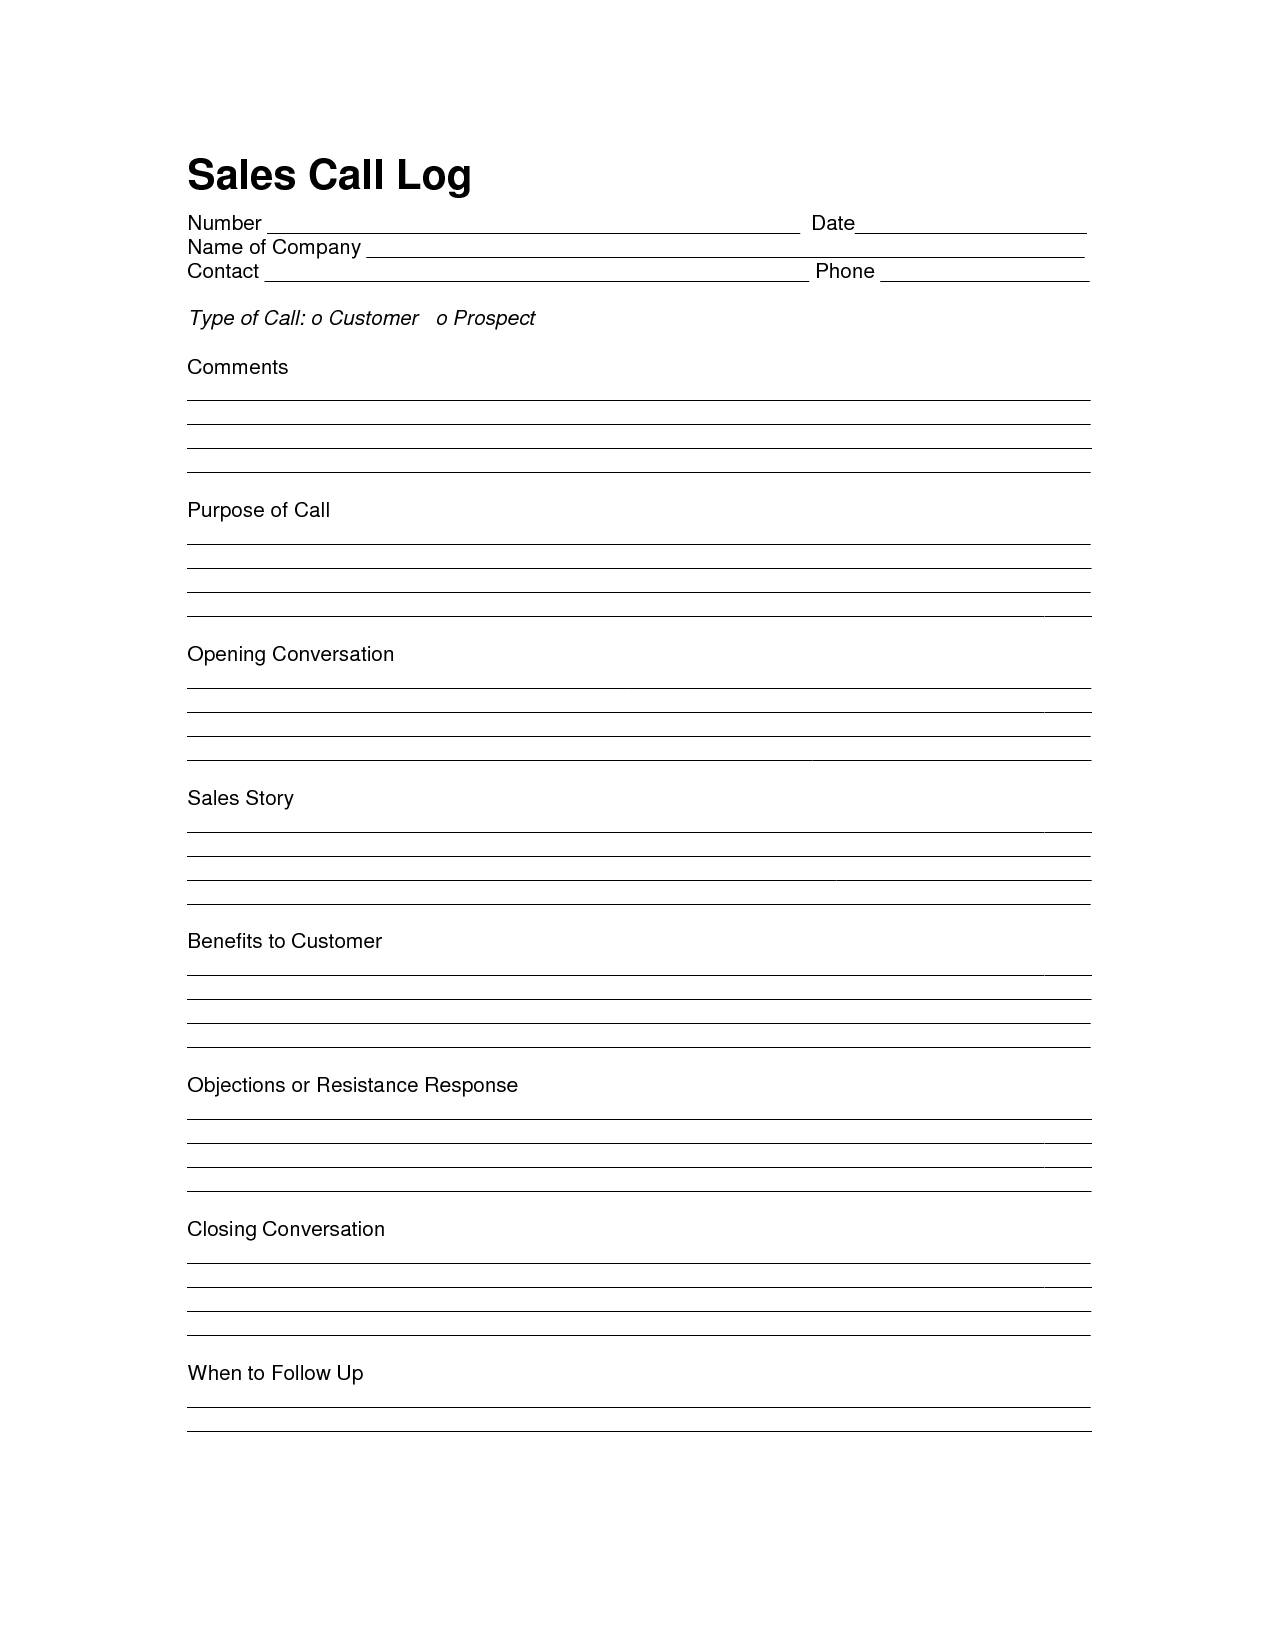 Sales Log Sheet Template | Sales Call Log Template | Call Log - Free Printable Customer Information Sheets